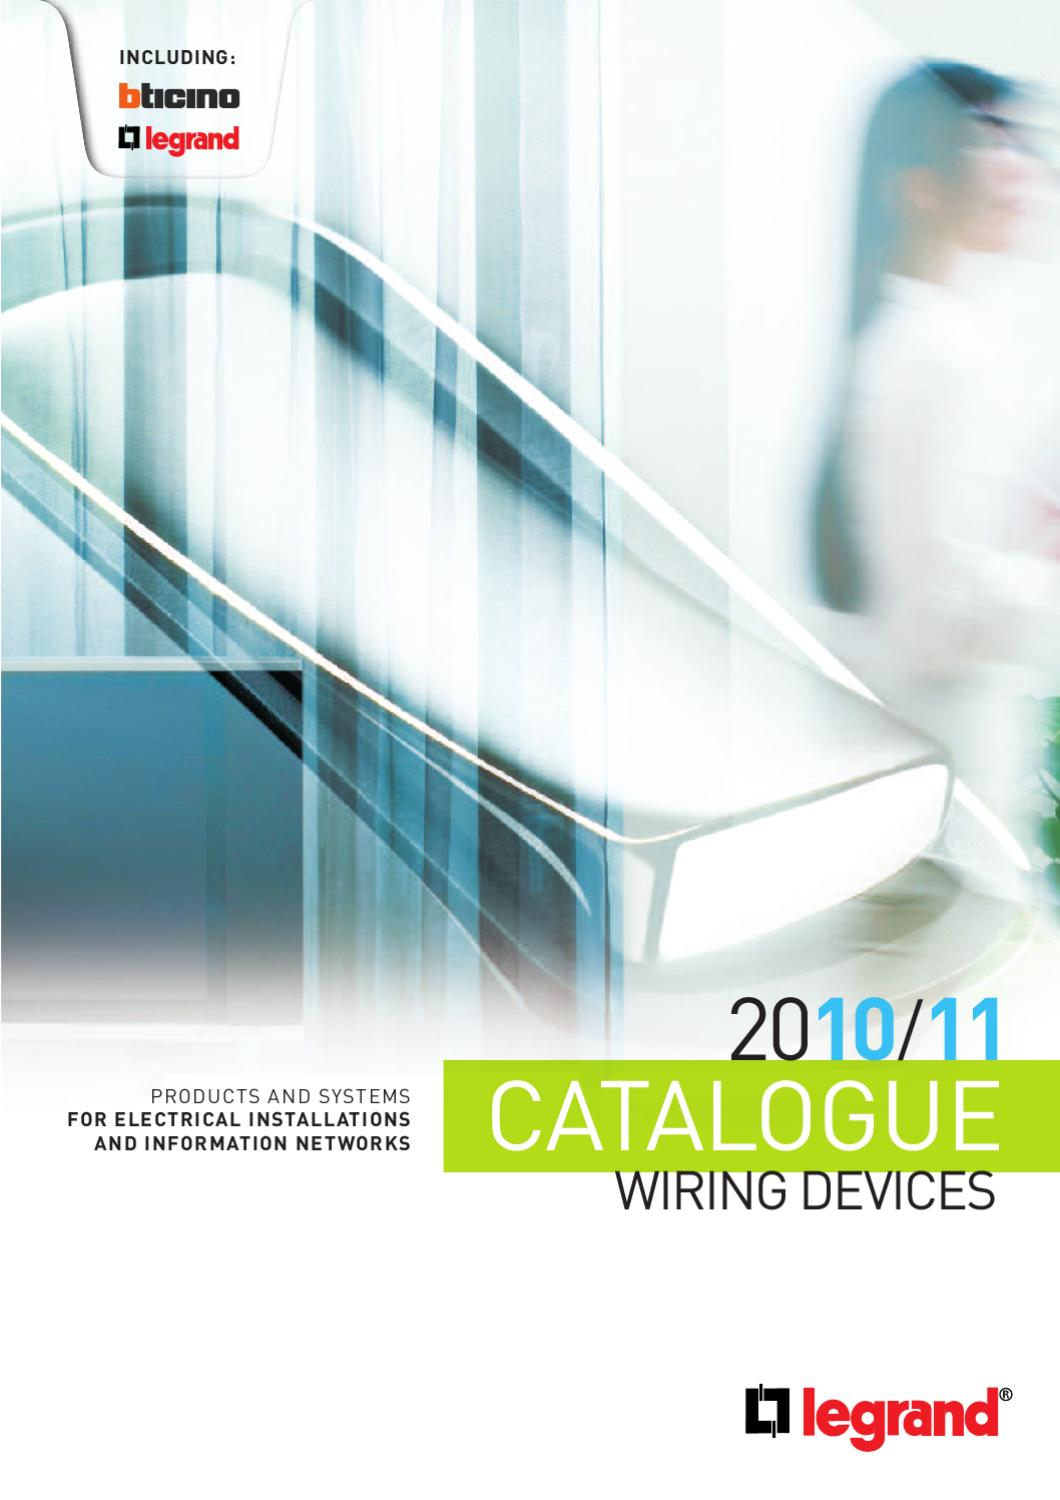 Http Bizflipscom Library Pdf New Legrand Catalogue By Wiring Code Sans 10142 Brochures Uk Ltd Issuu